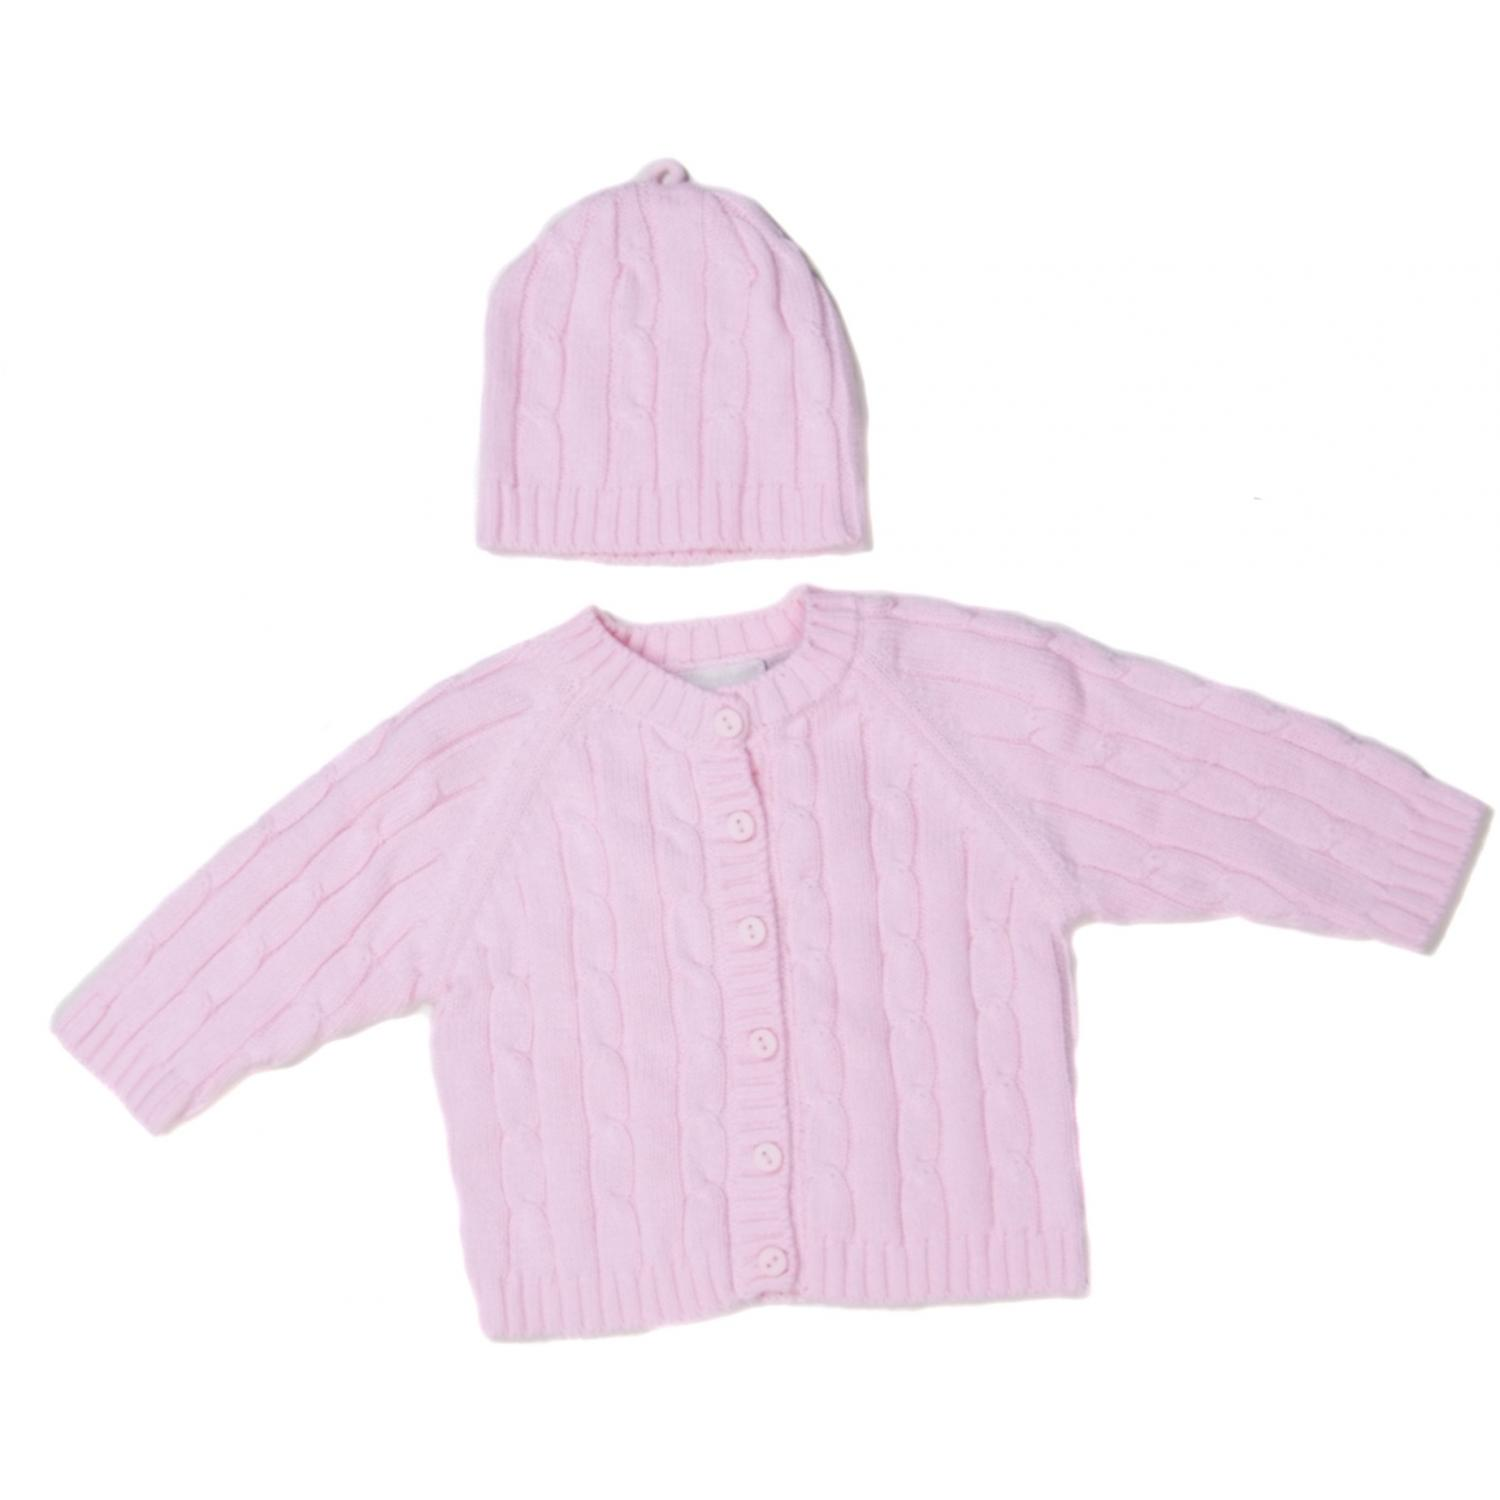 Elegant Baby Cable Knit Sweater Box Set 12 Months - Pink